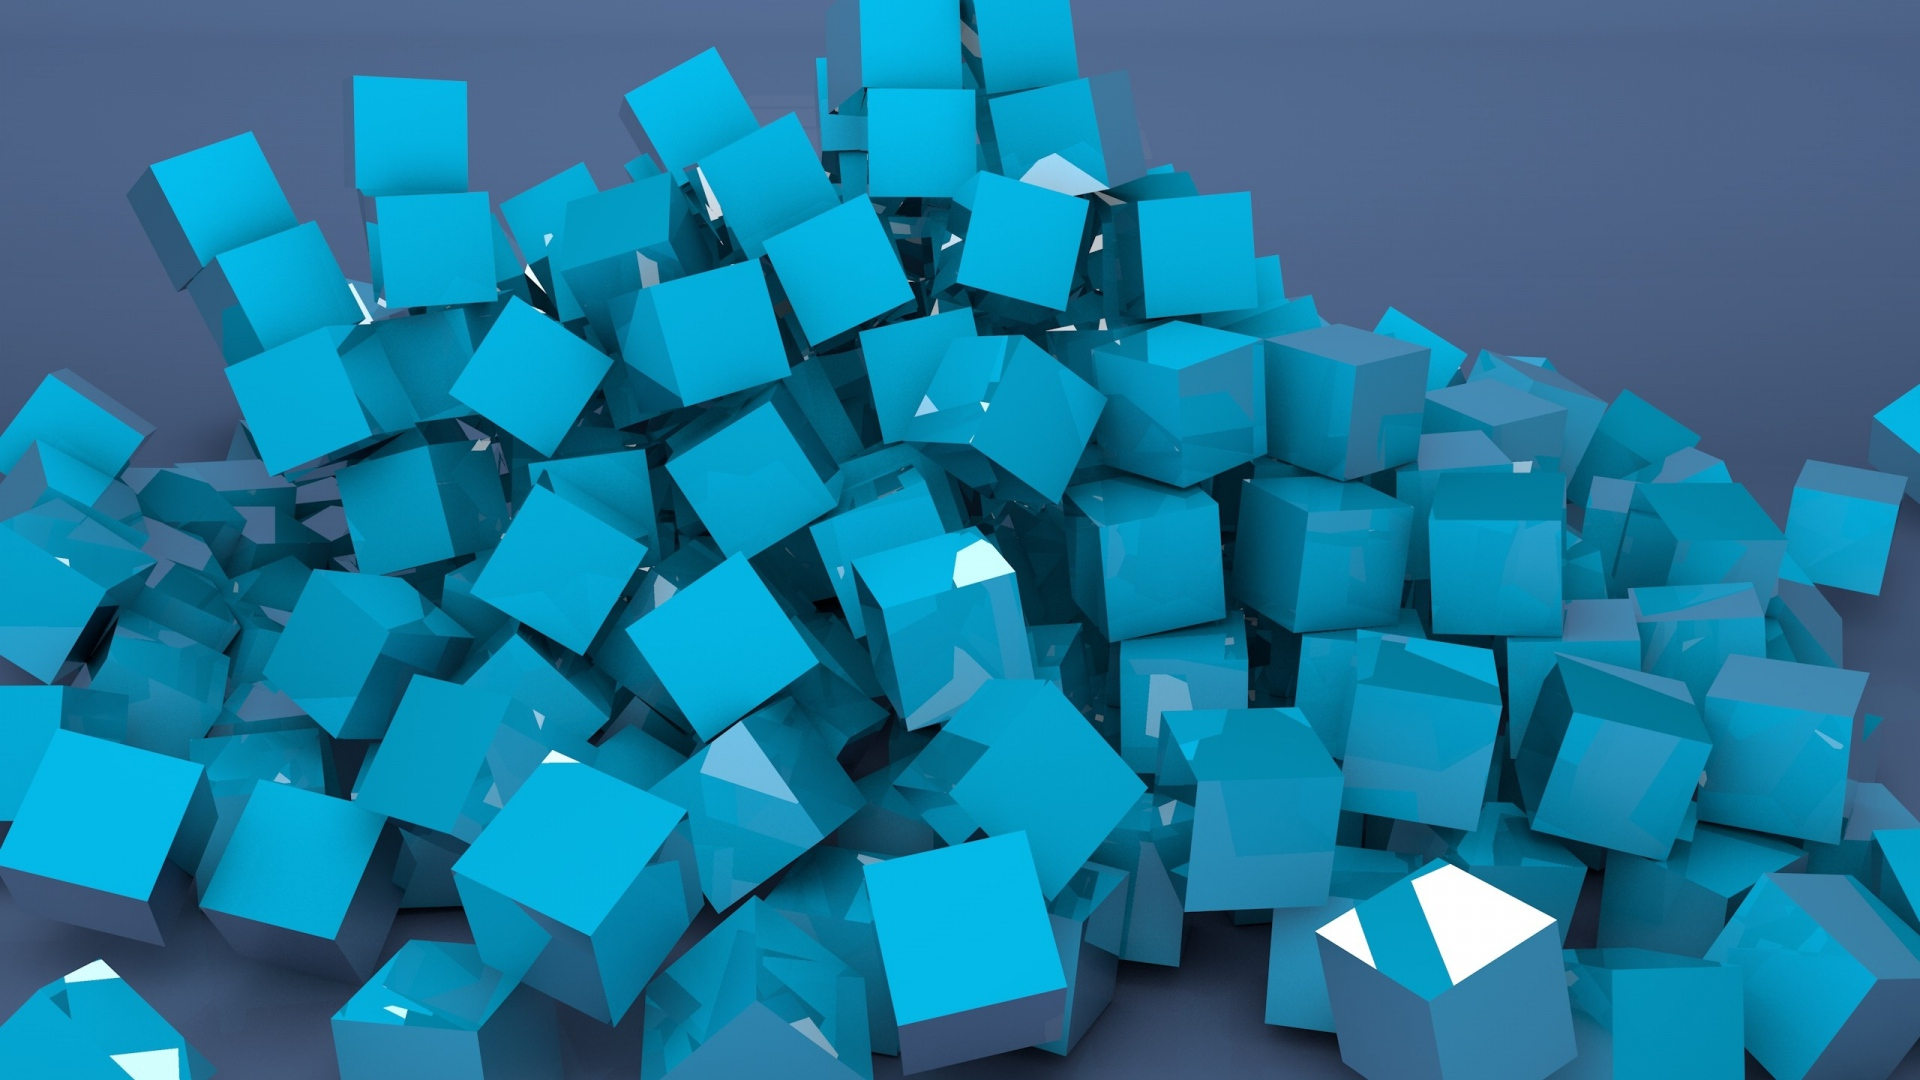 Get The Latest Blocks Lots Color News Pictures And Videos Learn All About From Wallpapers4uorg Your Wallpaper Source